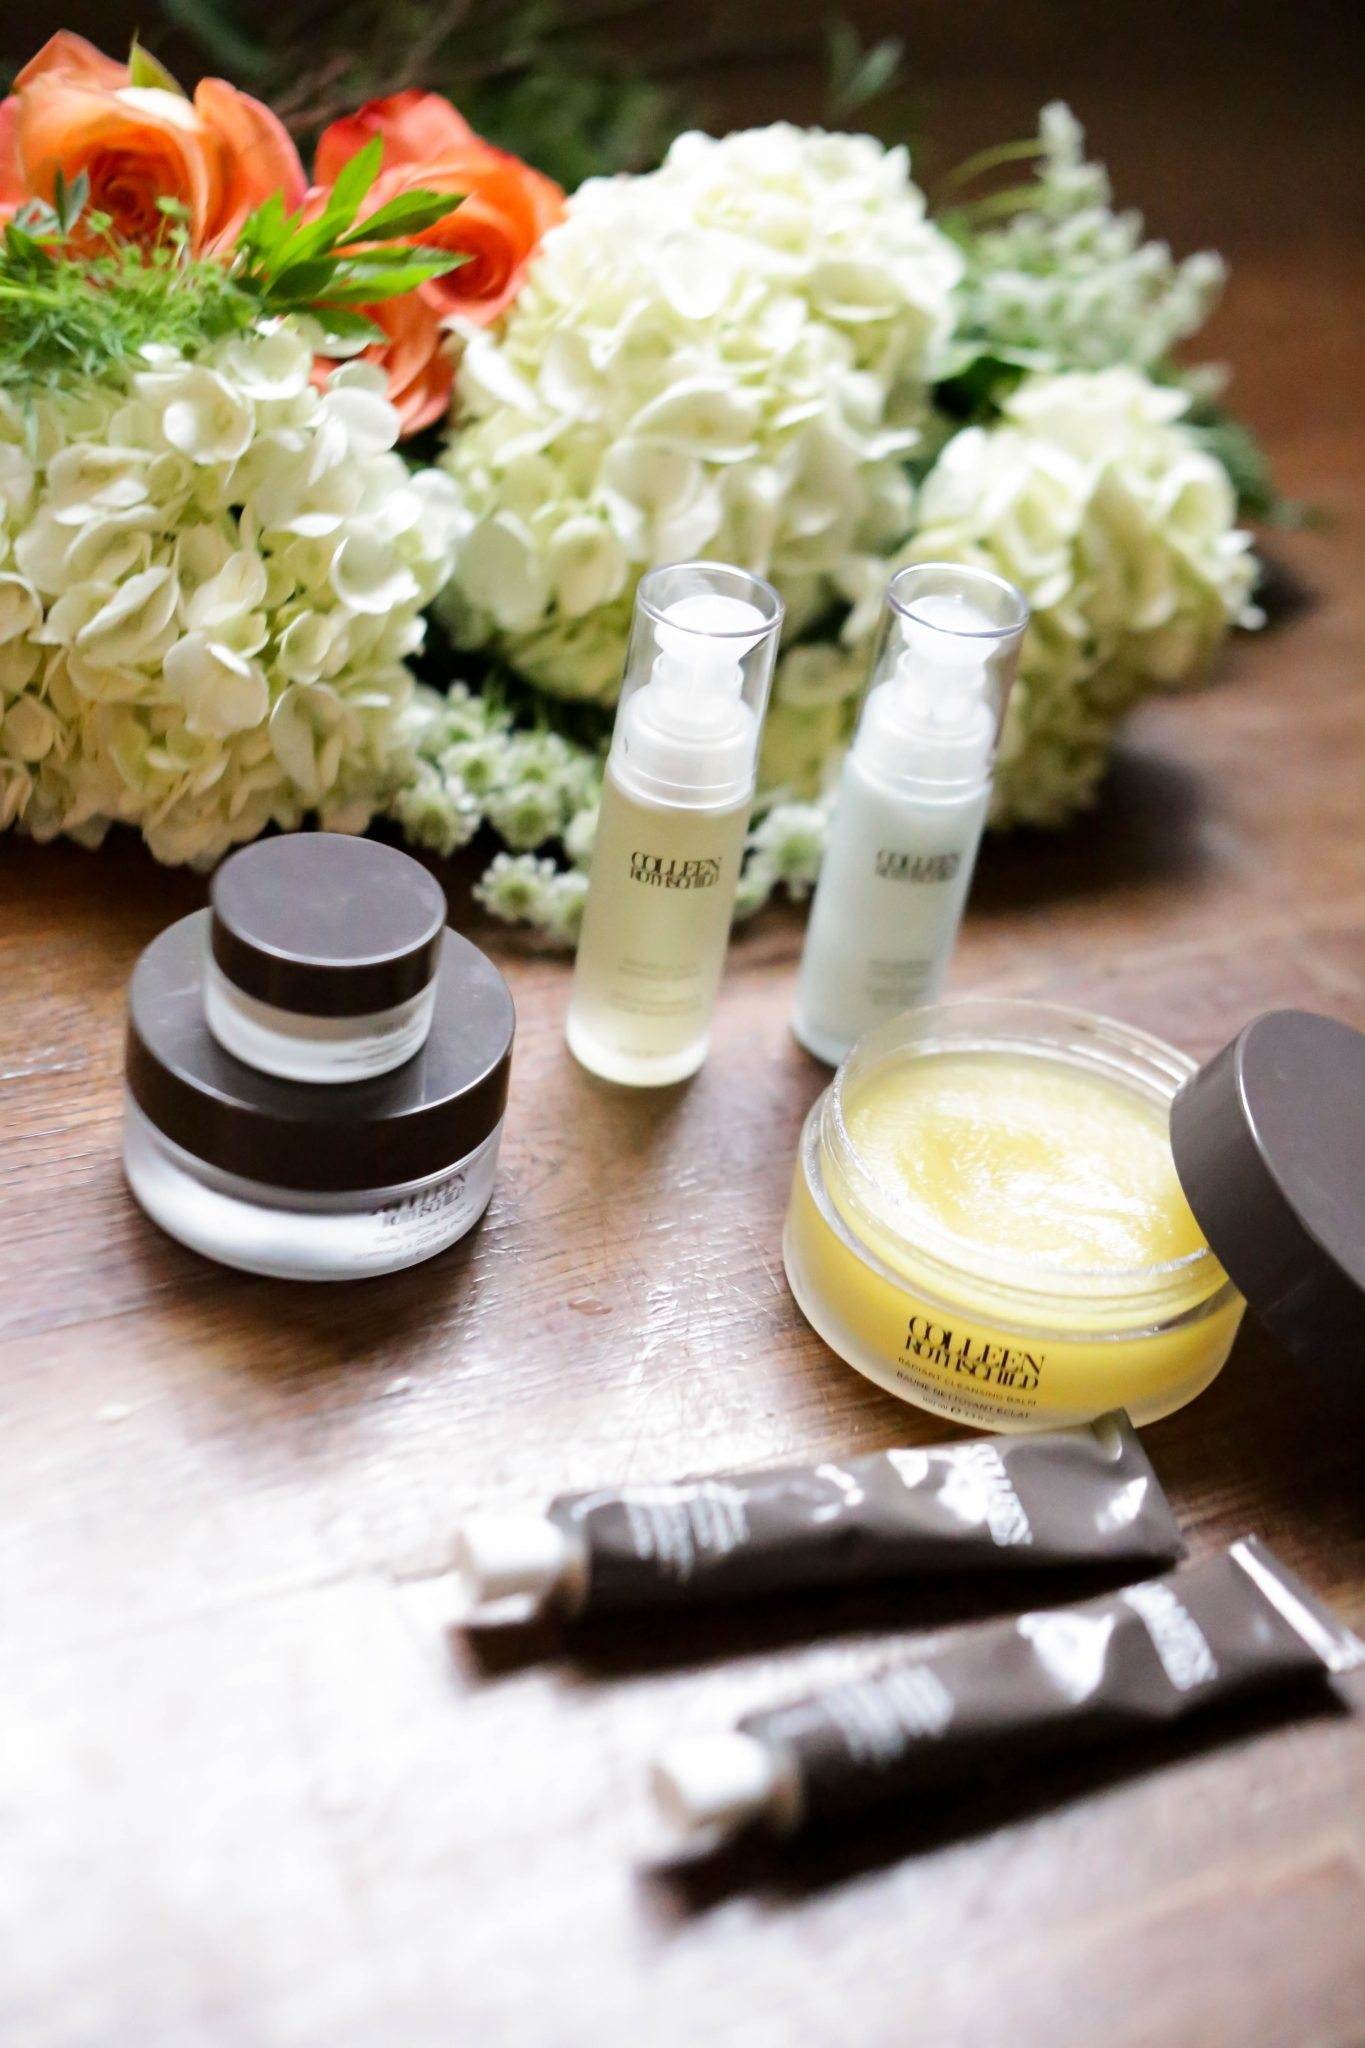 Three things to add to your beauty routine.